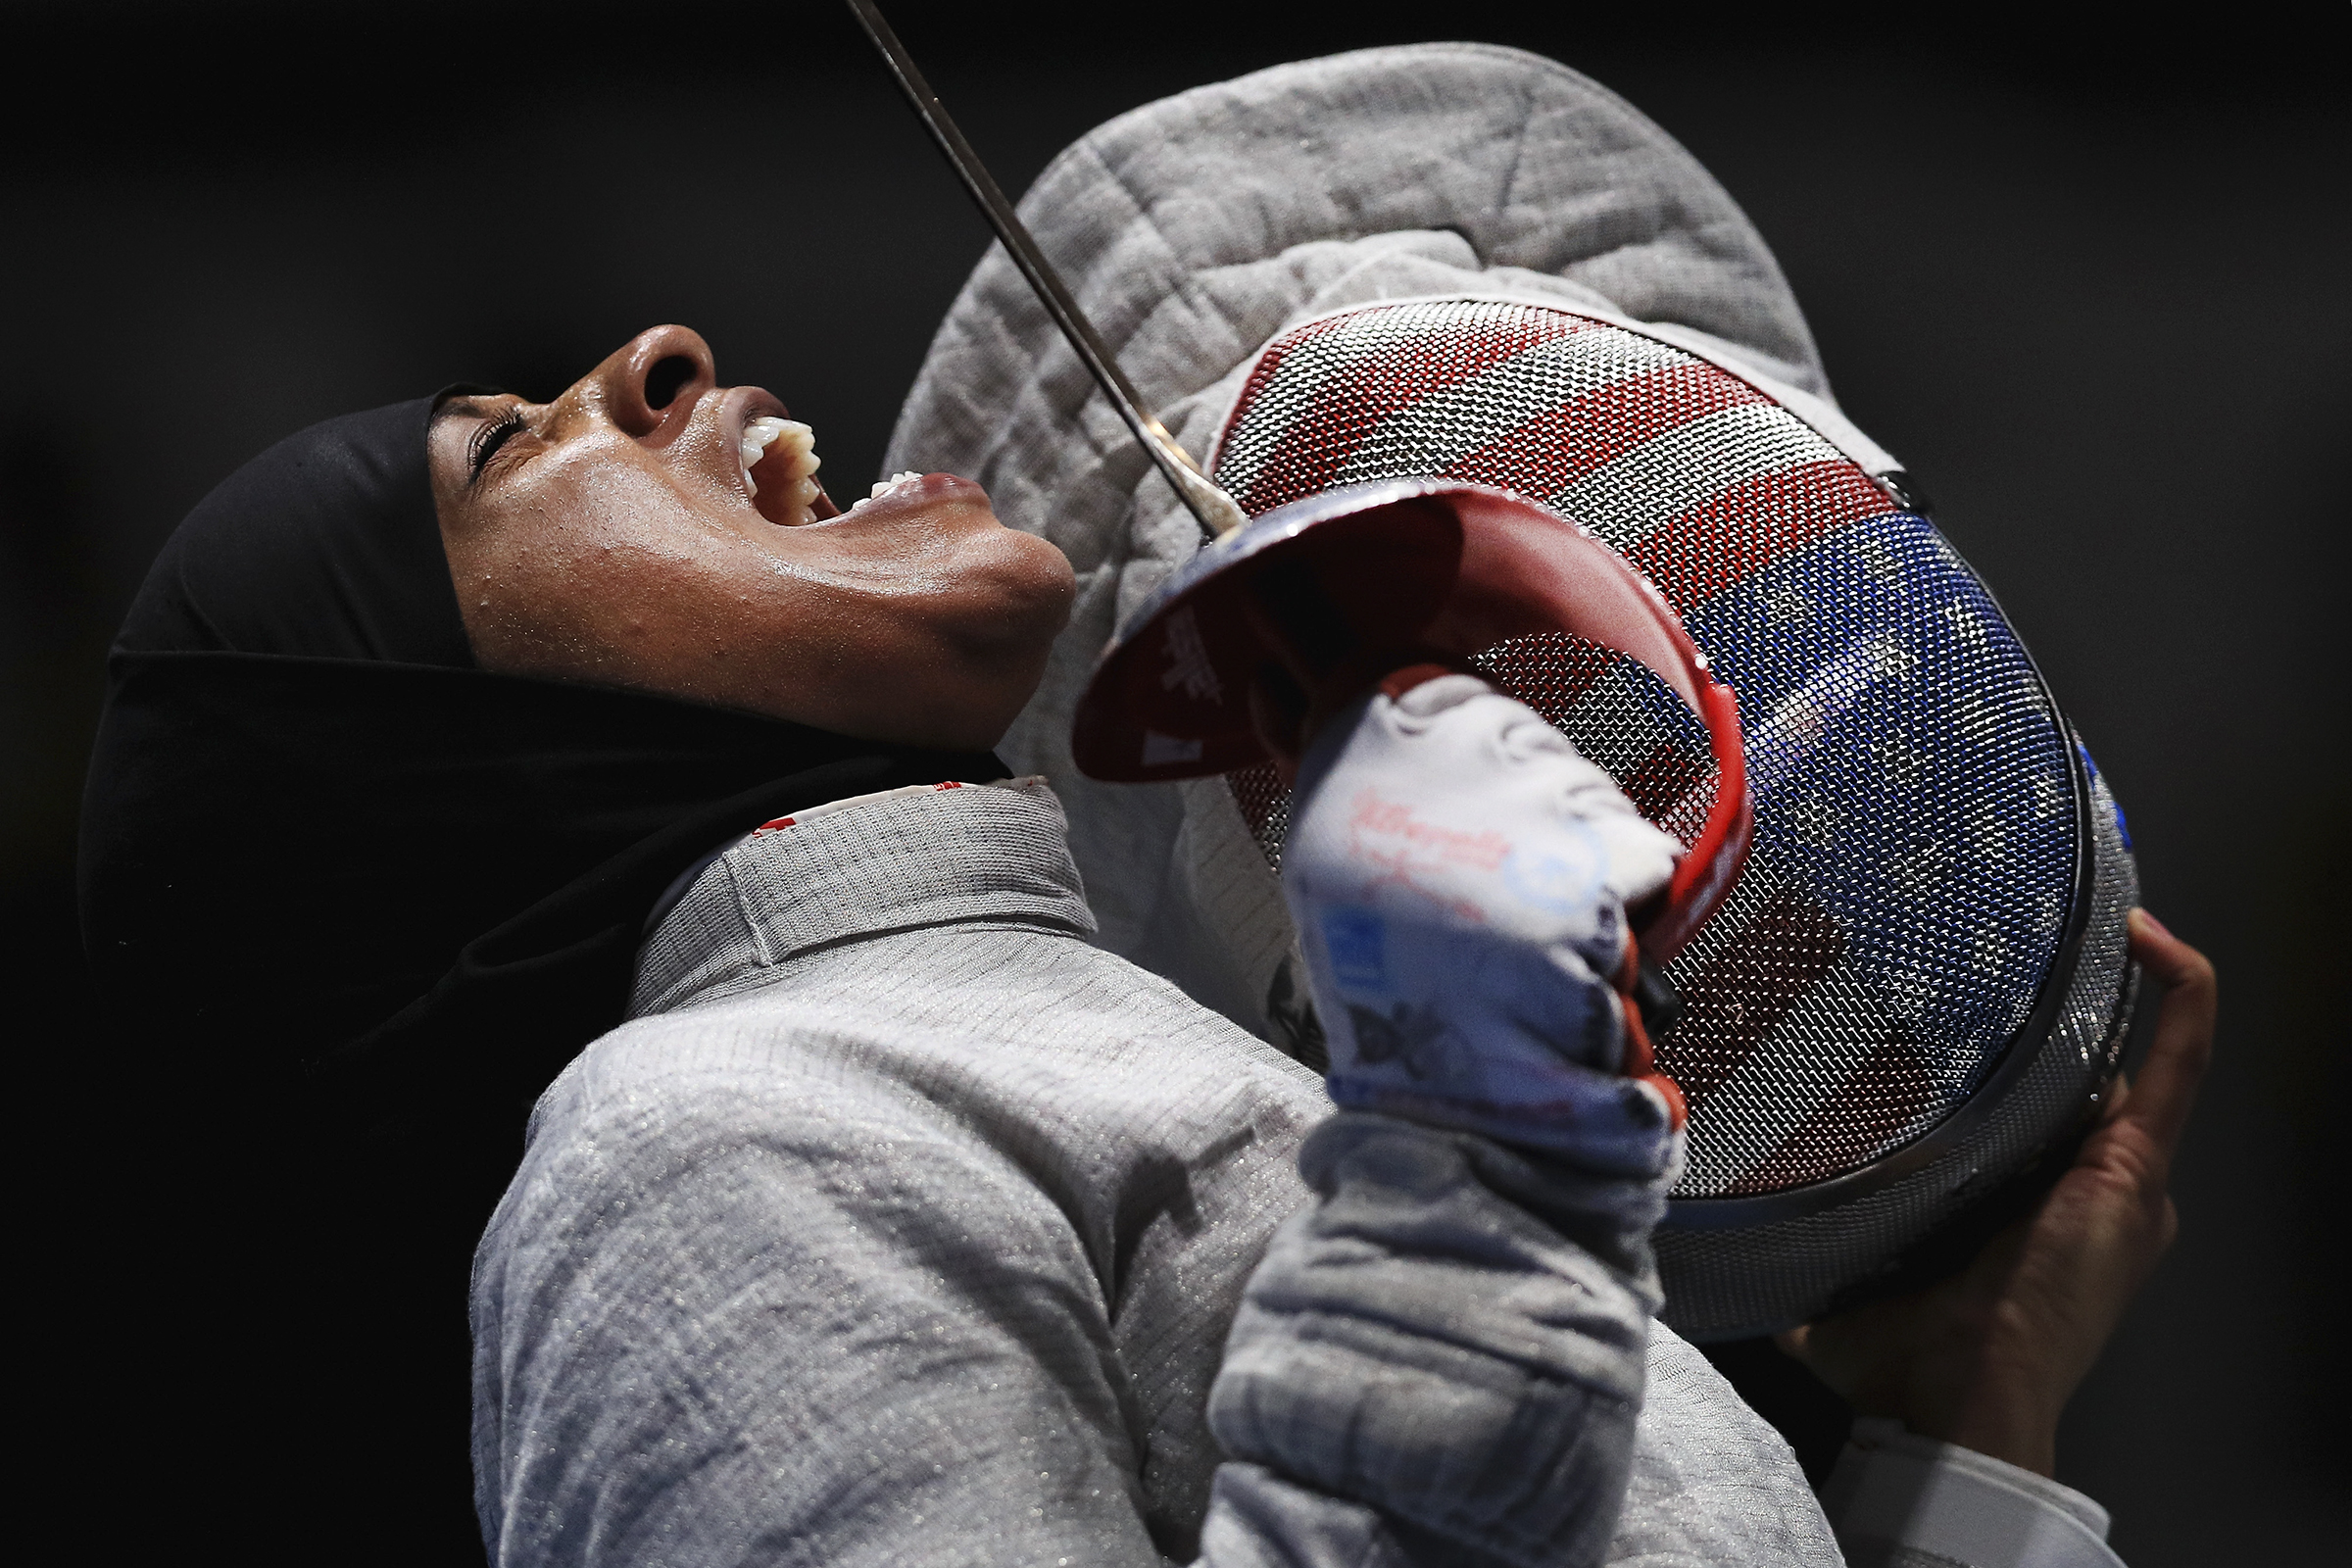 RIO DE JANEIRO, BRAZIL - AUGUST 13:  Ibtihaj Muhammad of the United States reacts against Sofya Velikaya of Russia during the Women's Sabre Team Semifinal 1 Russia vs United States at Carioca Arena 3 on August 13, 2016 in Rio de Janeiro, Brazil.  (Photo by Tom Pennington/Getty Images)